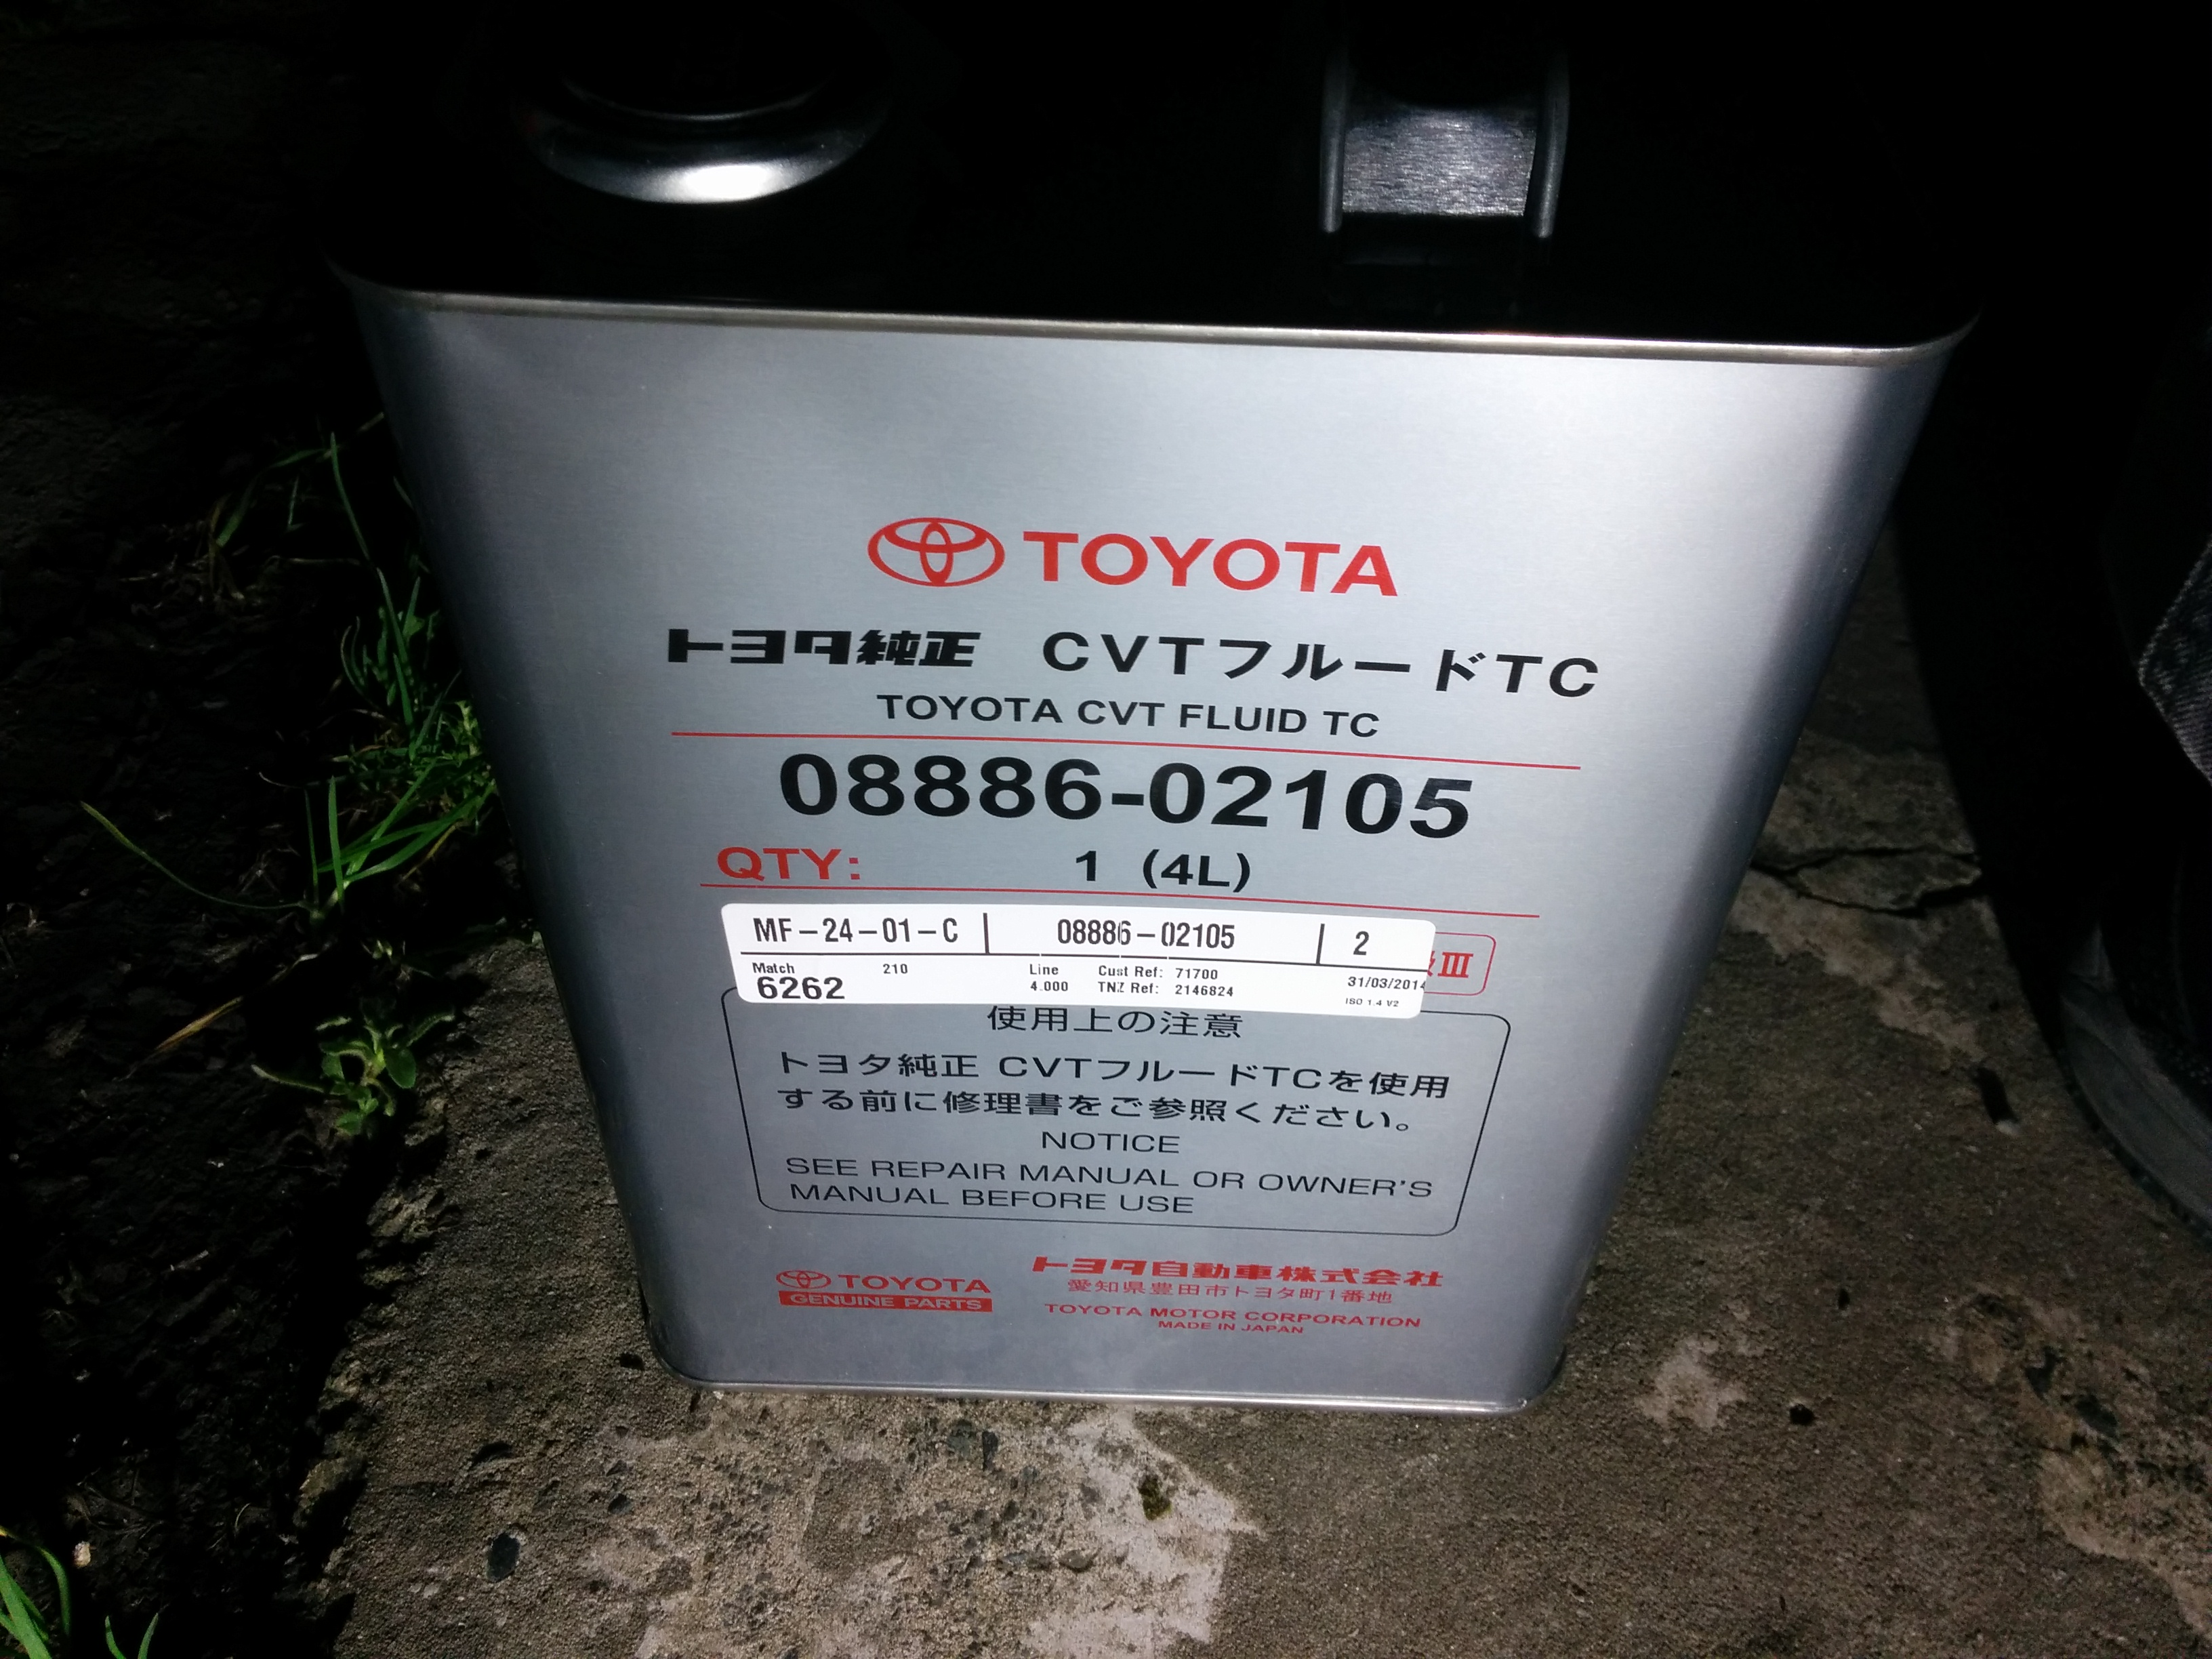 Toyota CVT oil change – Sergei's Stuff and Things